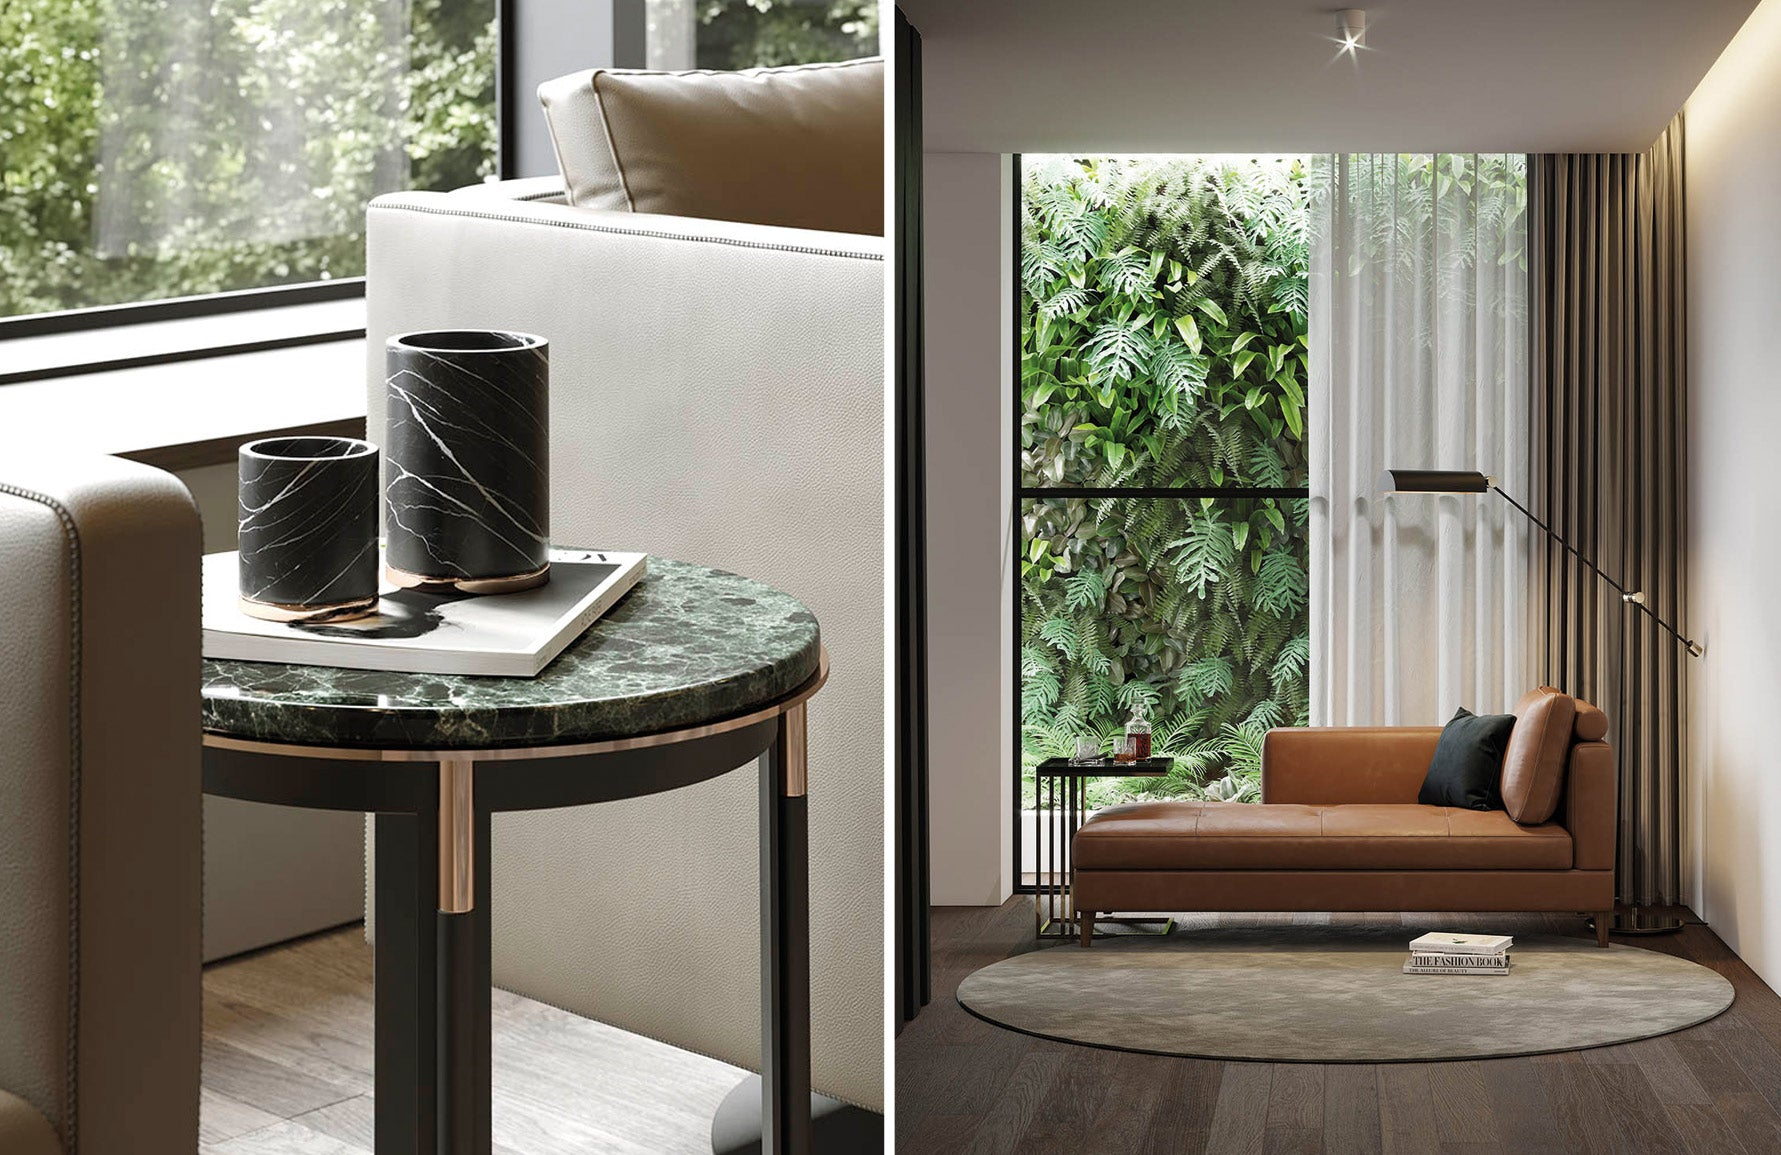 Laskasas | Behind The Brand | Portuguese Furniture | Marble Side Table | Orange Chaise Longue | LuxDeco.com